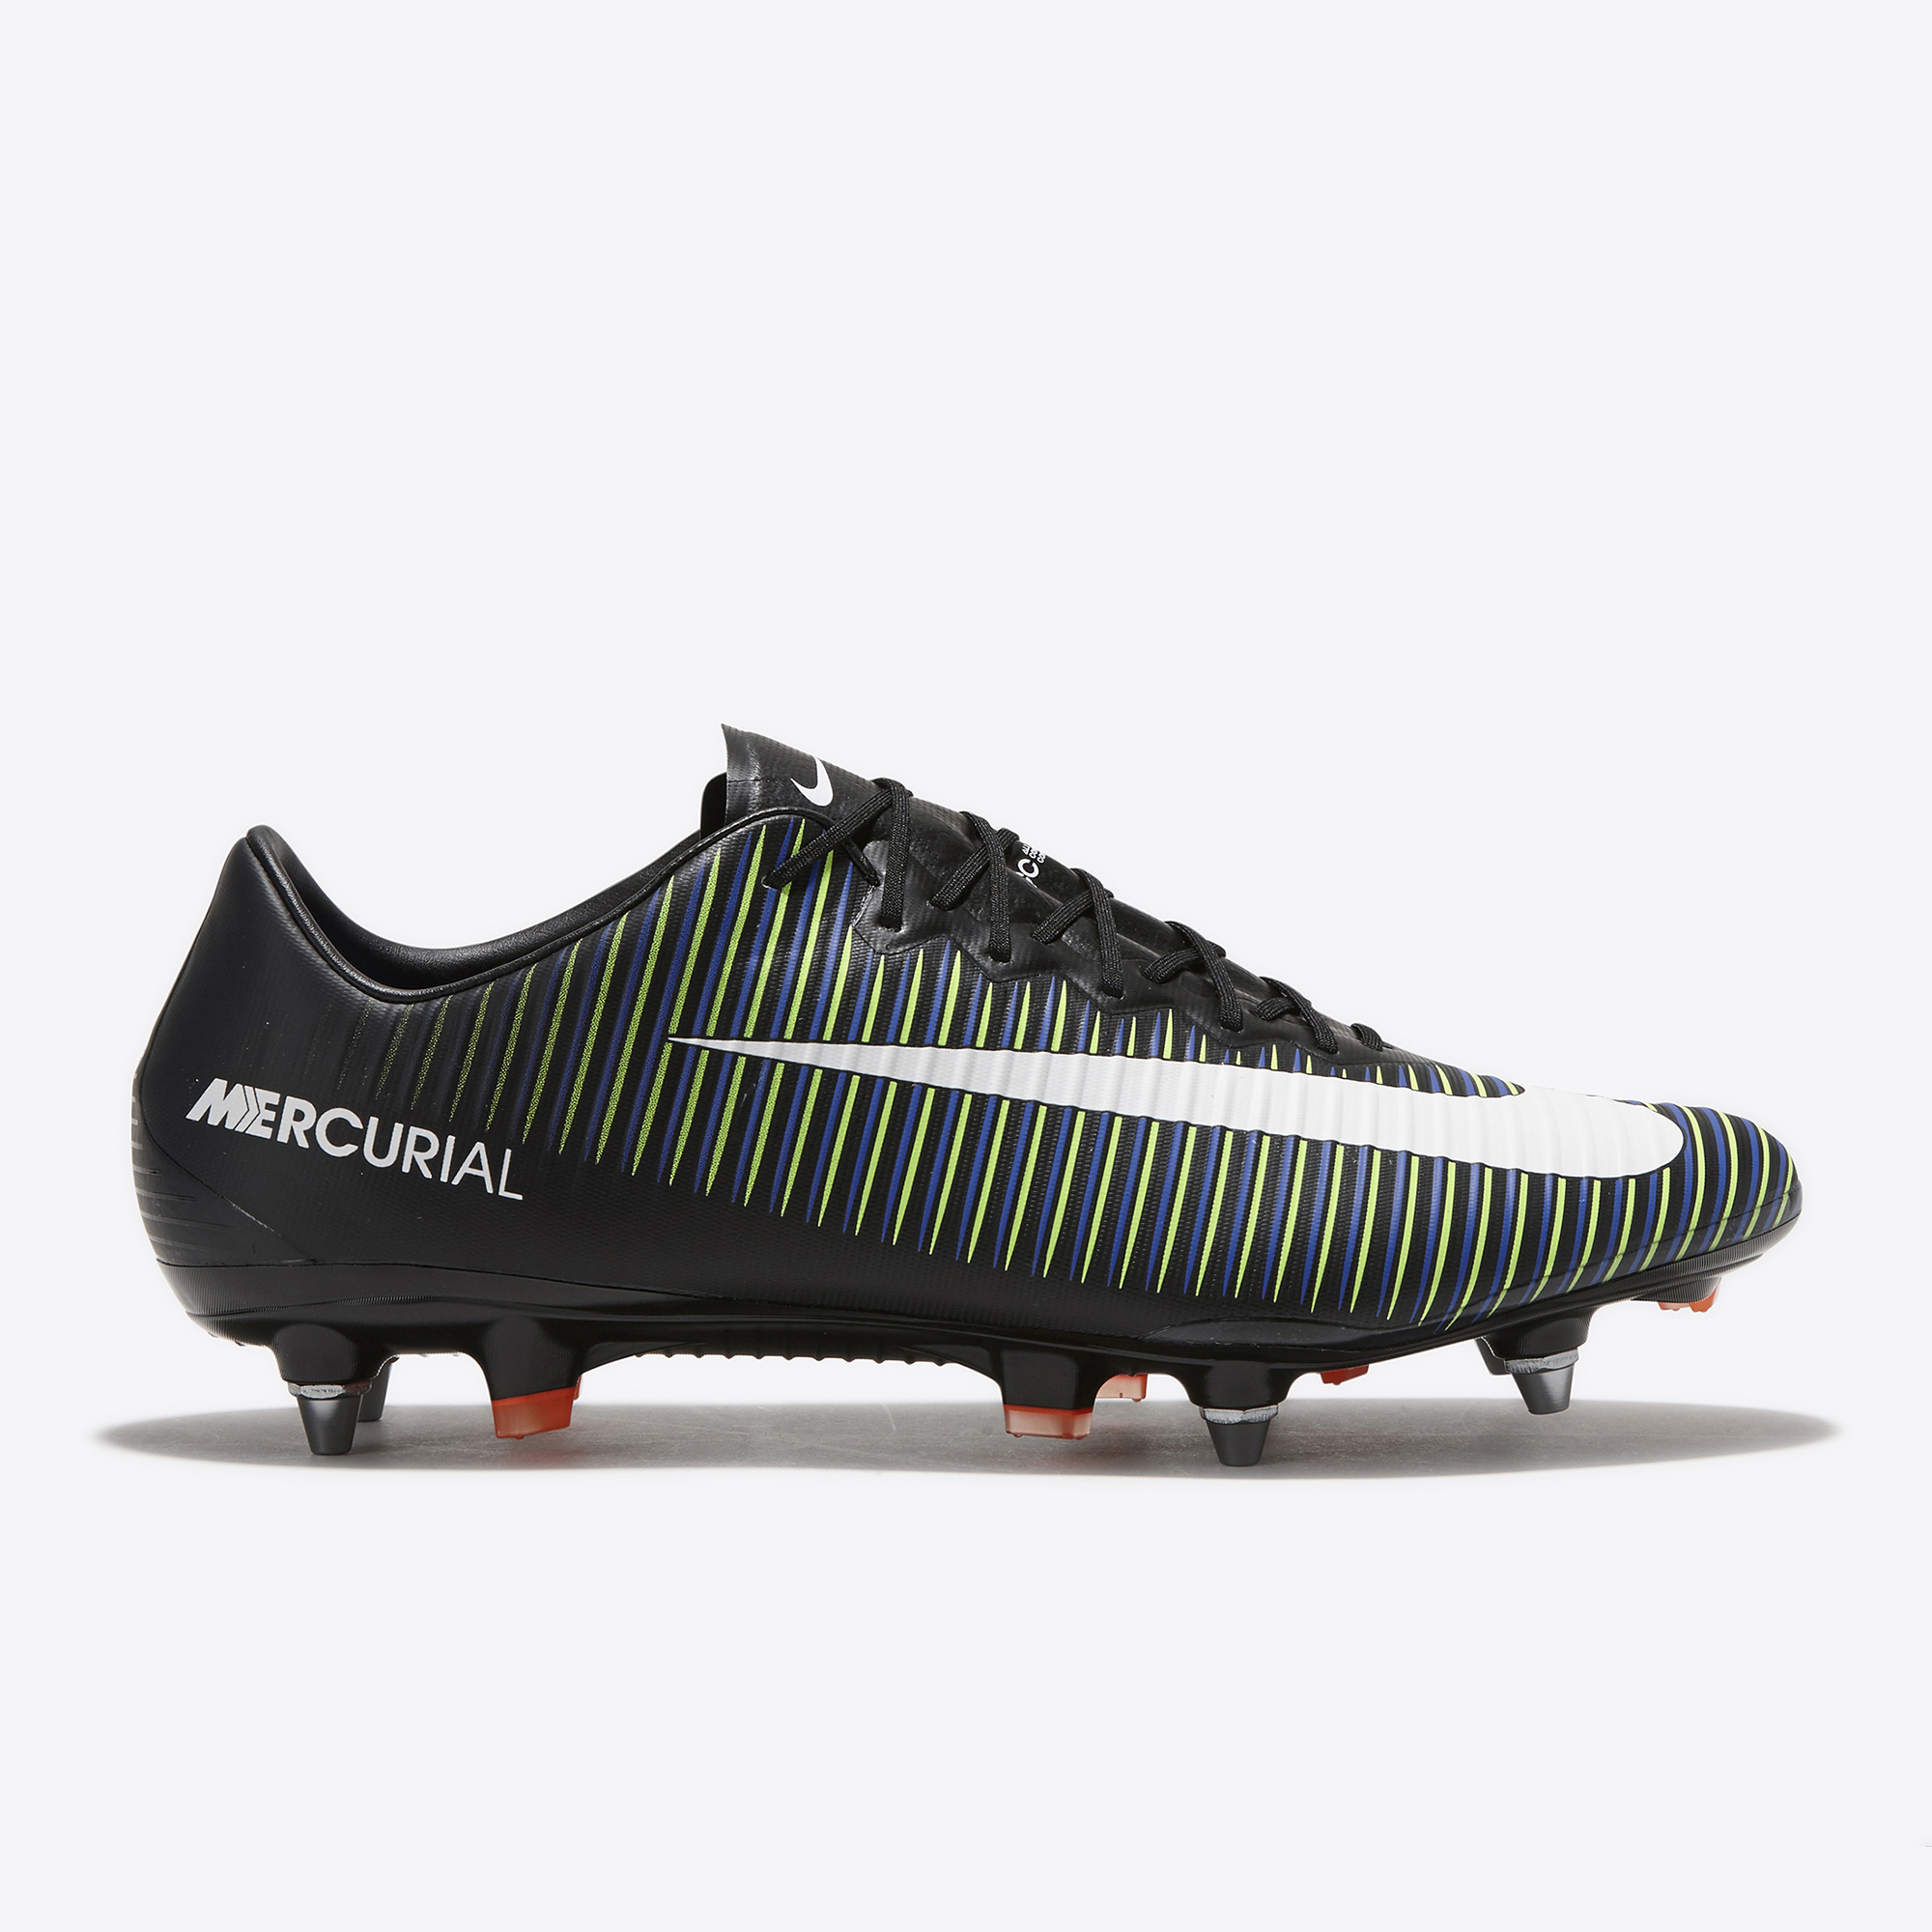 premium selection 44284 a206a Buy Nike Mercurial Superfly V & Vapor XI Rugby Boots ...